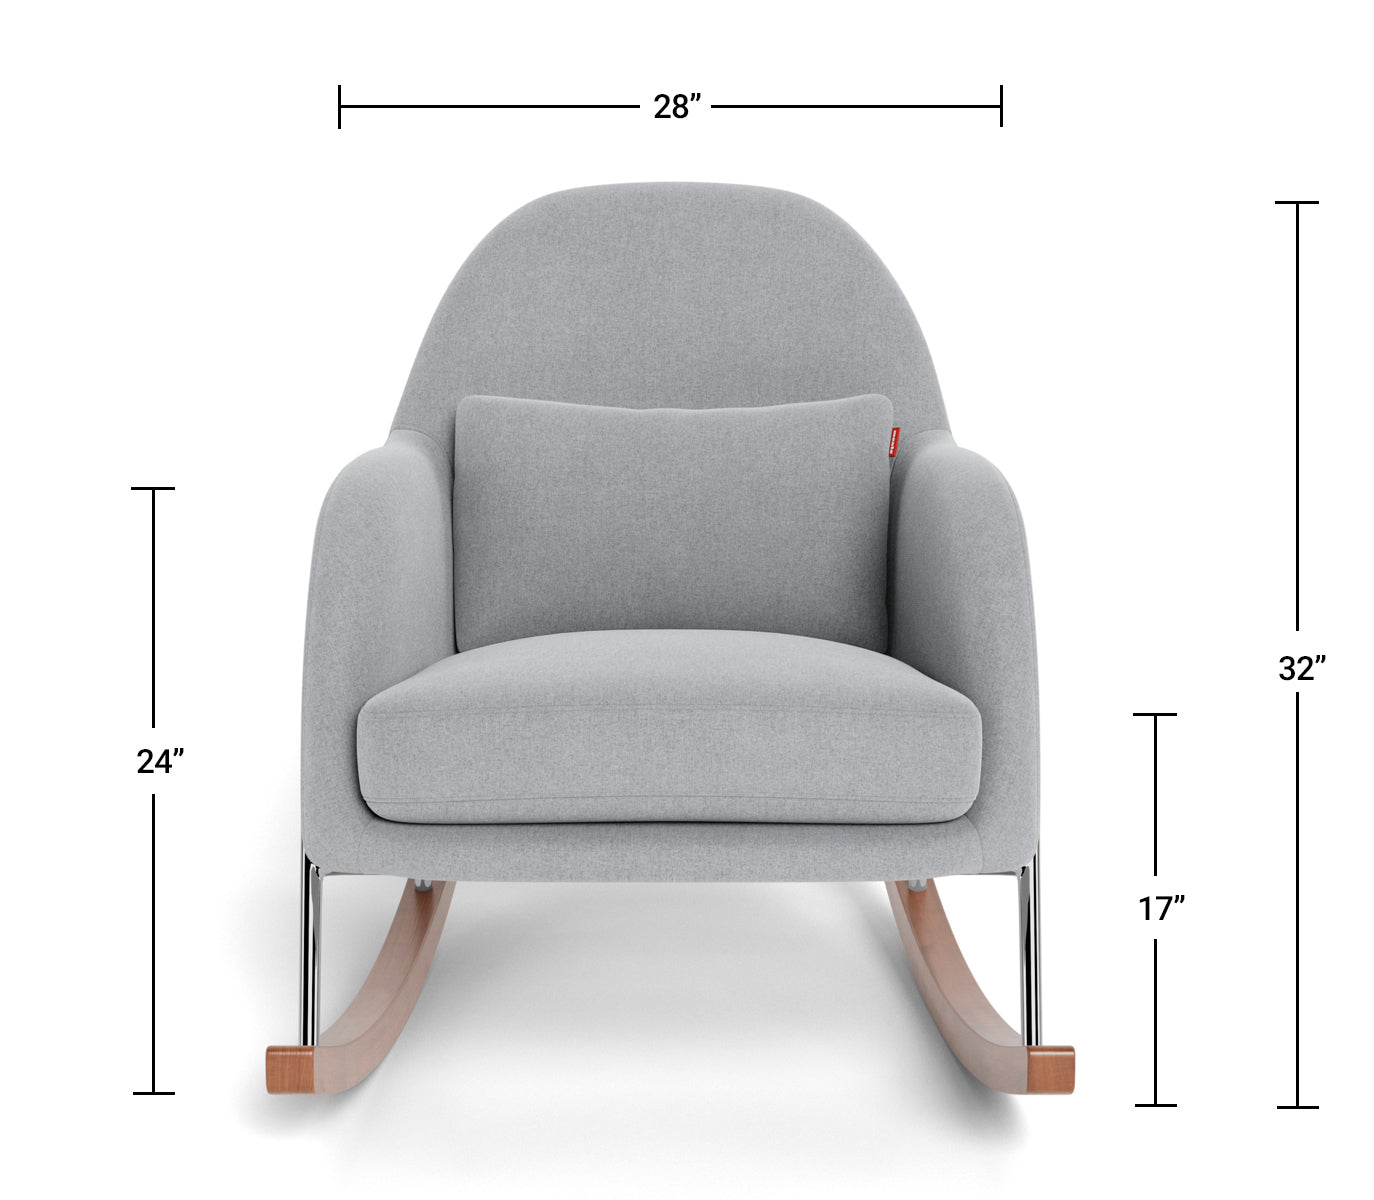 Modern Nursery Rocking Chair - Jackie Rocker Dimensions Front View